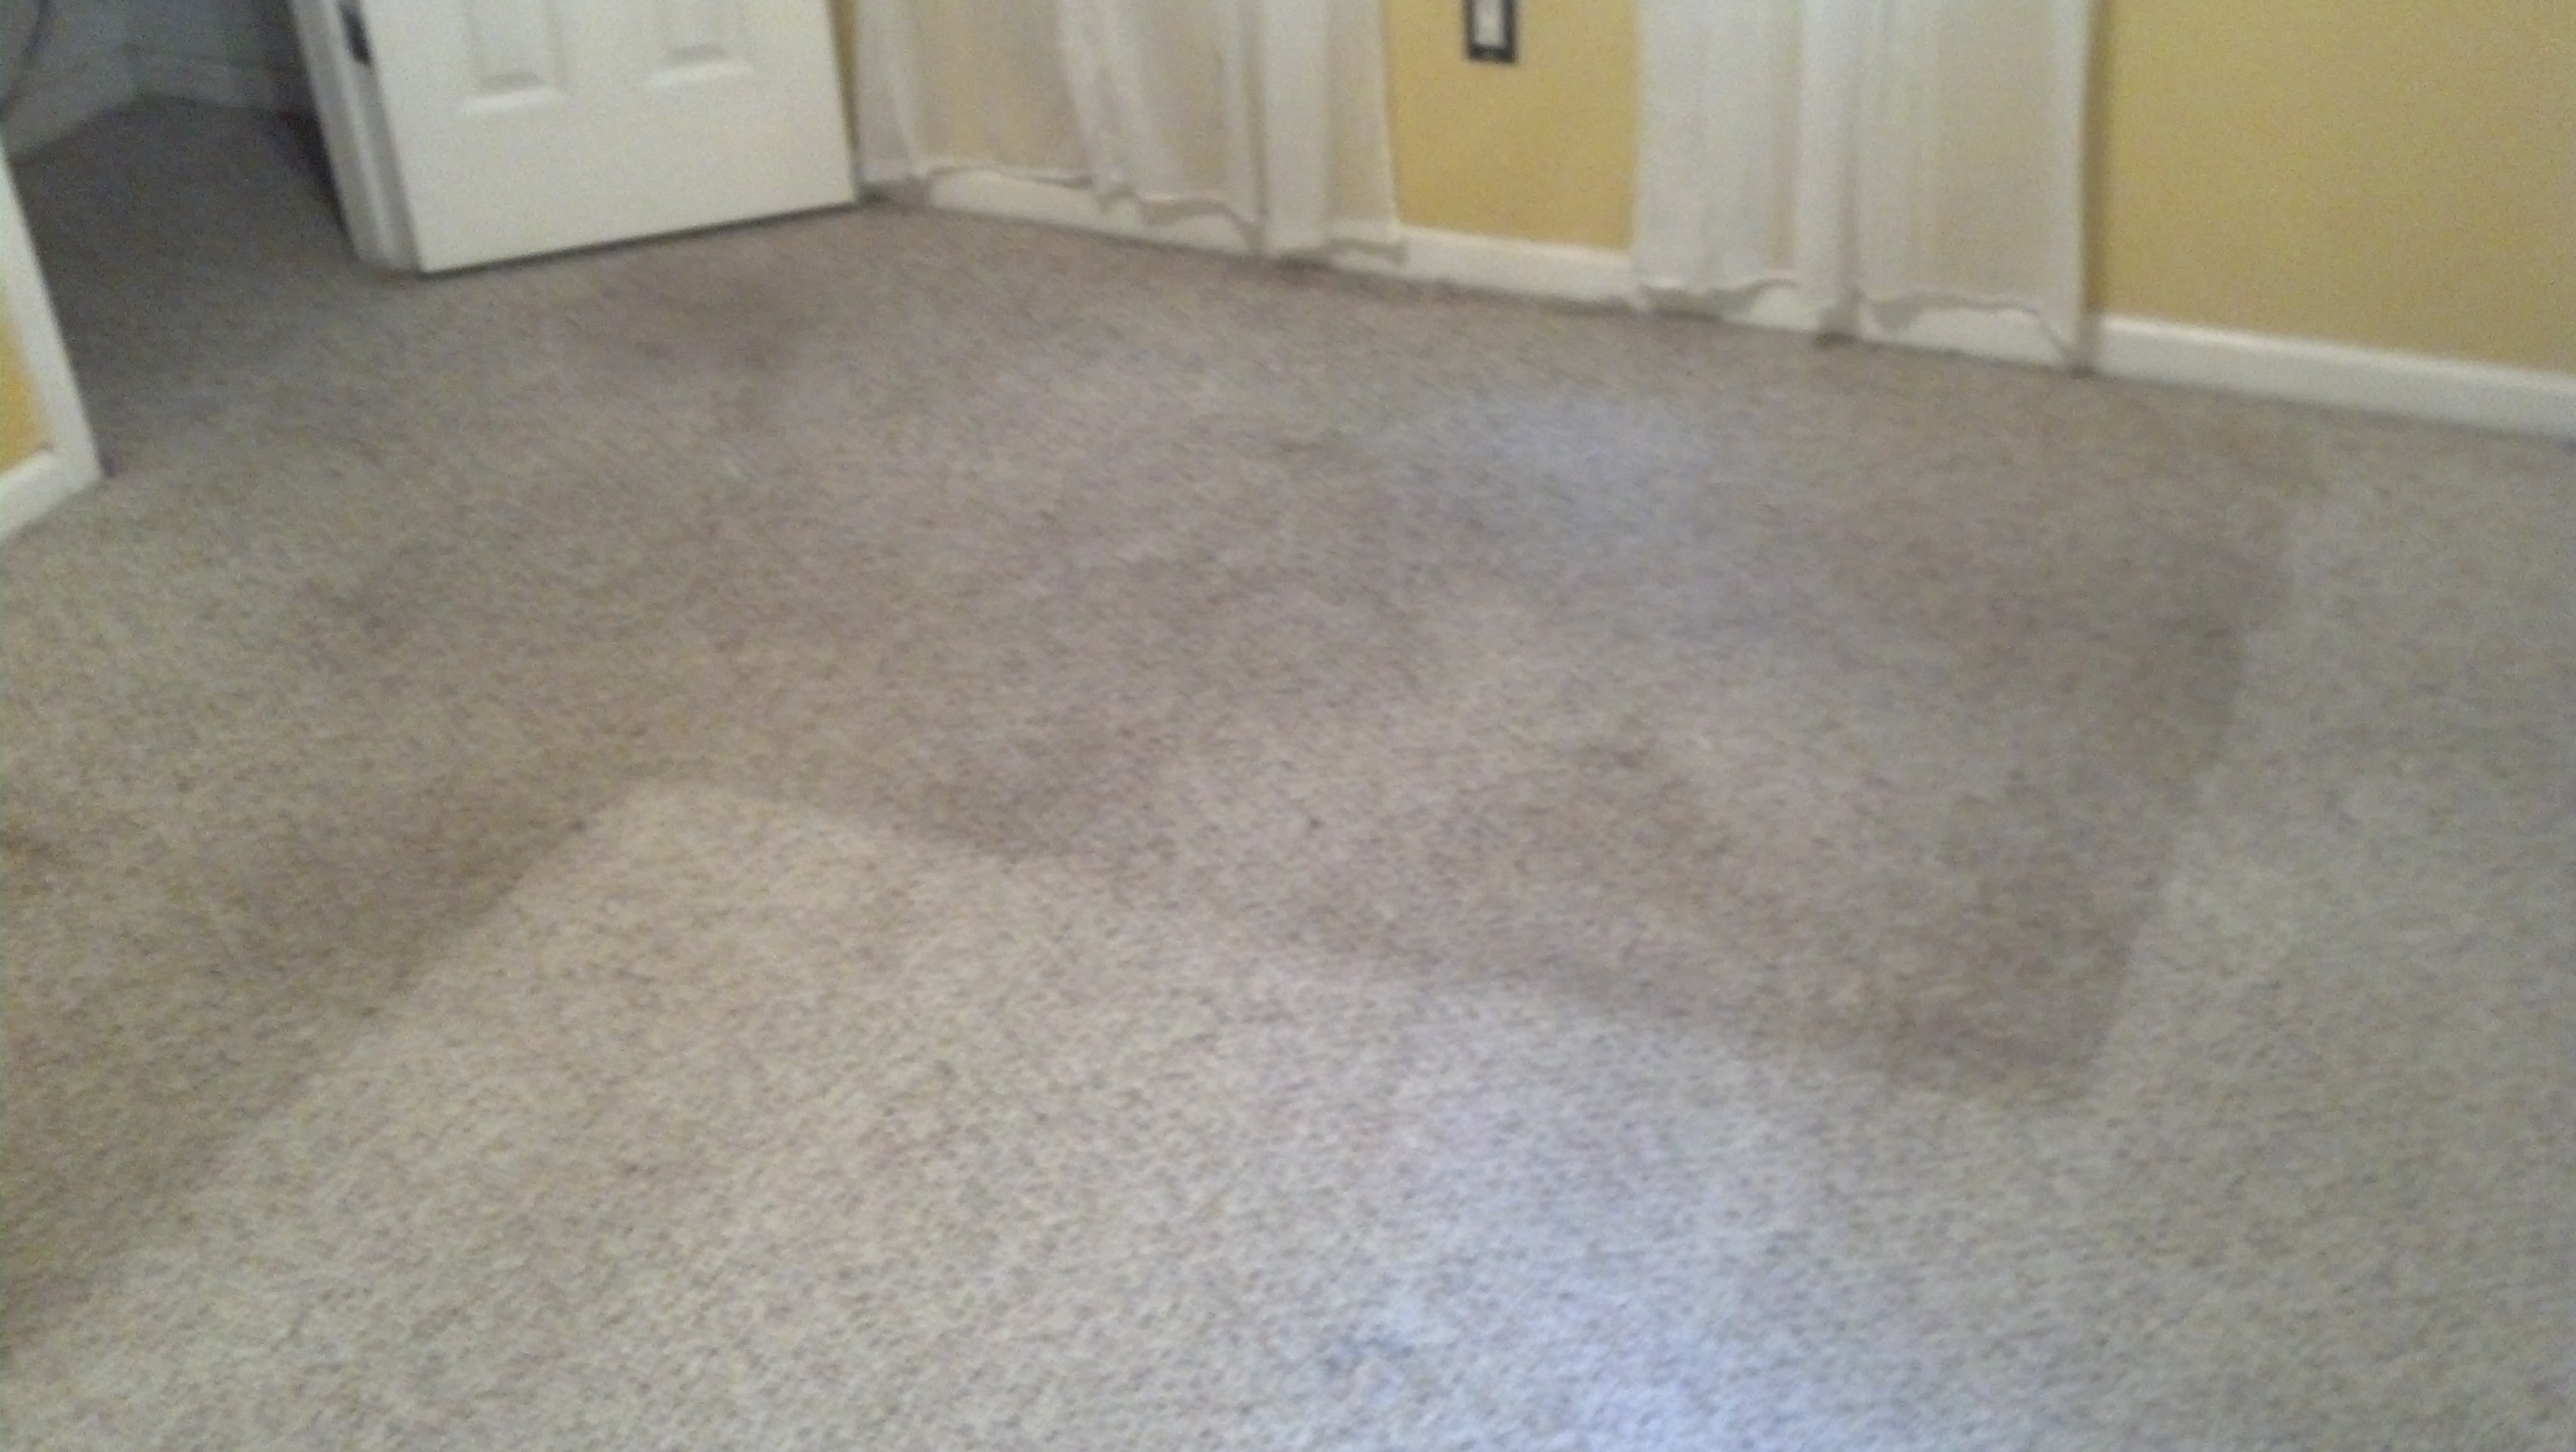 Norm cardilli author at golden glove clean page 9 of 25 berber carpet cleaning peachtree city baanklon Choice Image